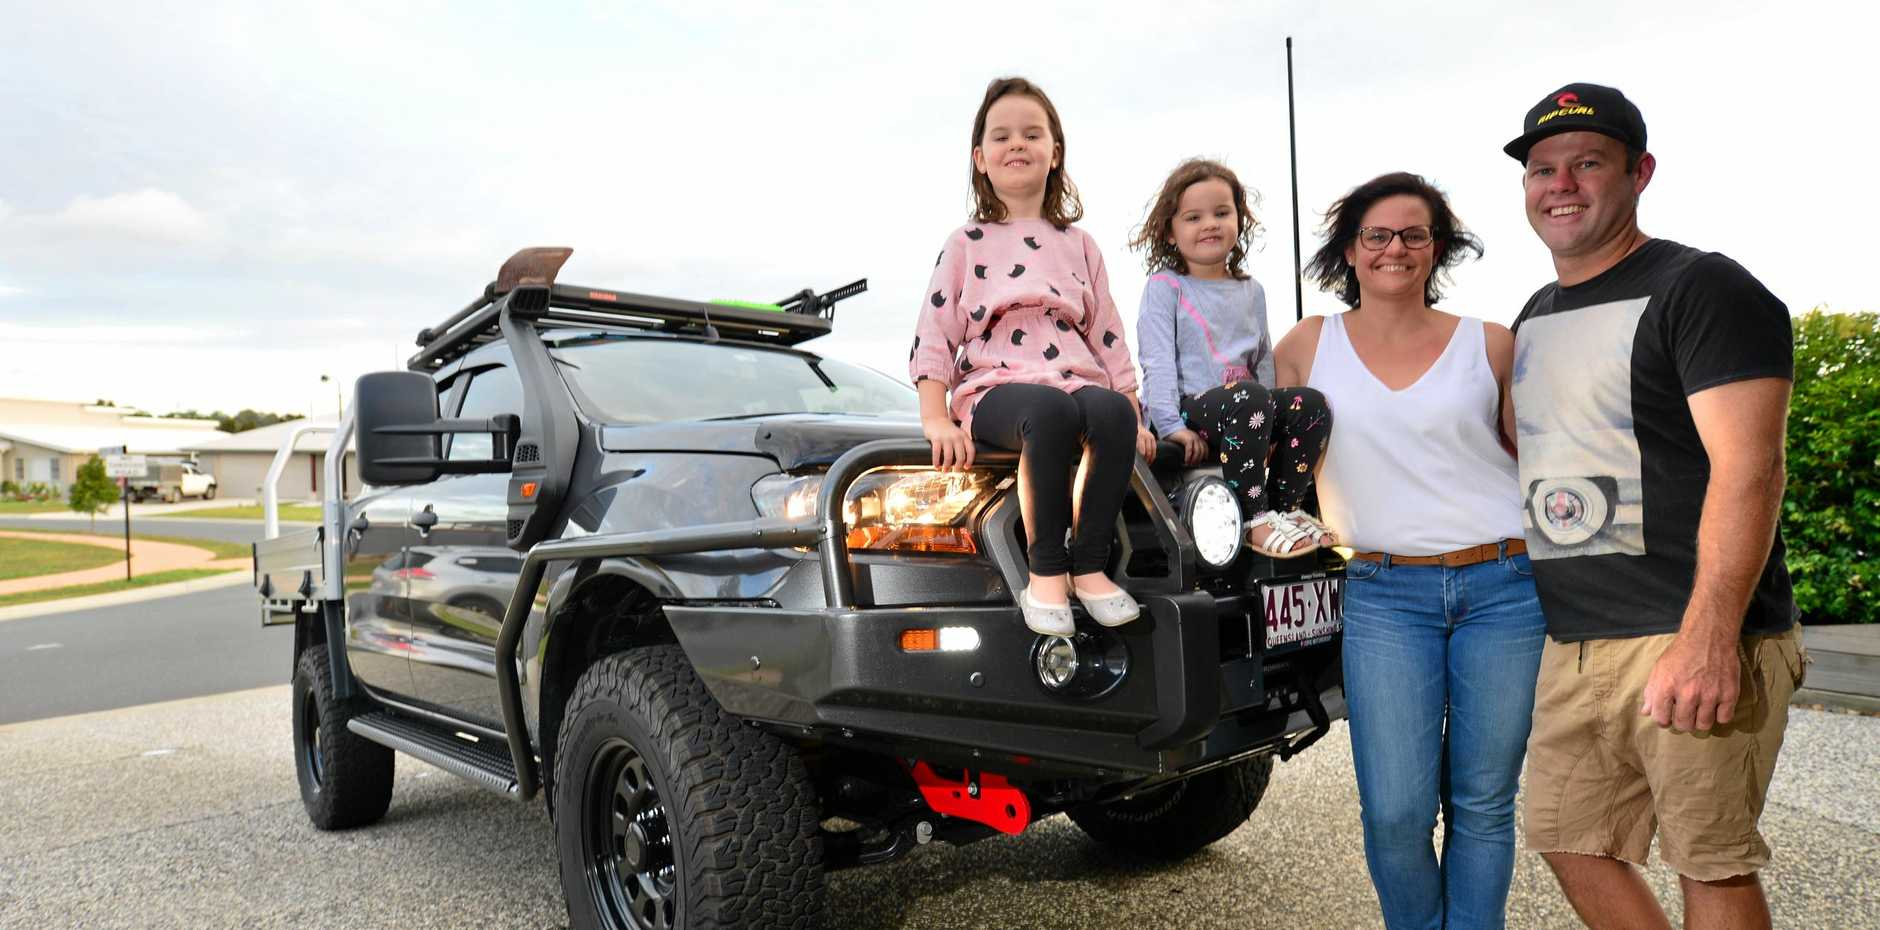 RARING TO GO: The Miller family is ready for a round Australia trip in their new Ranger, with a heap of new equipment from Sunshine Coast 4x4 and Outdoor.